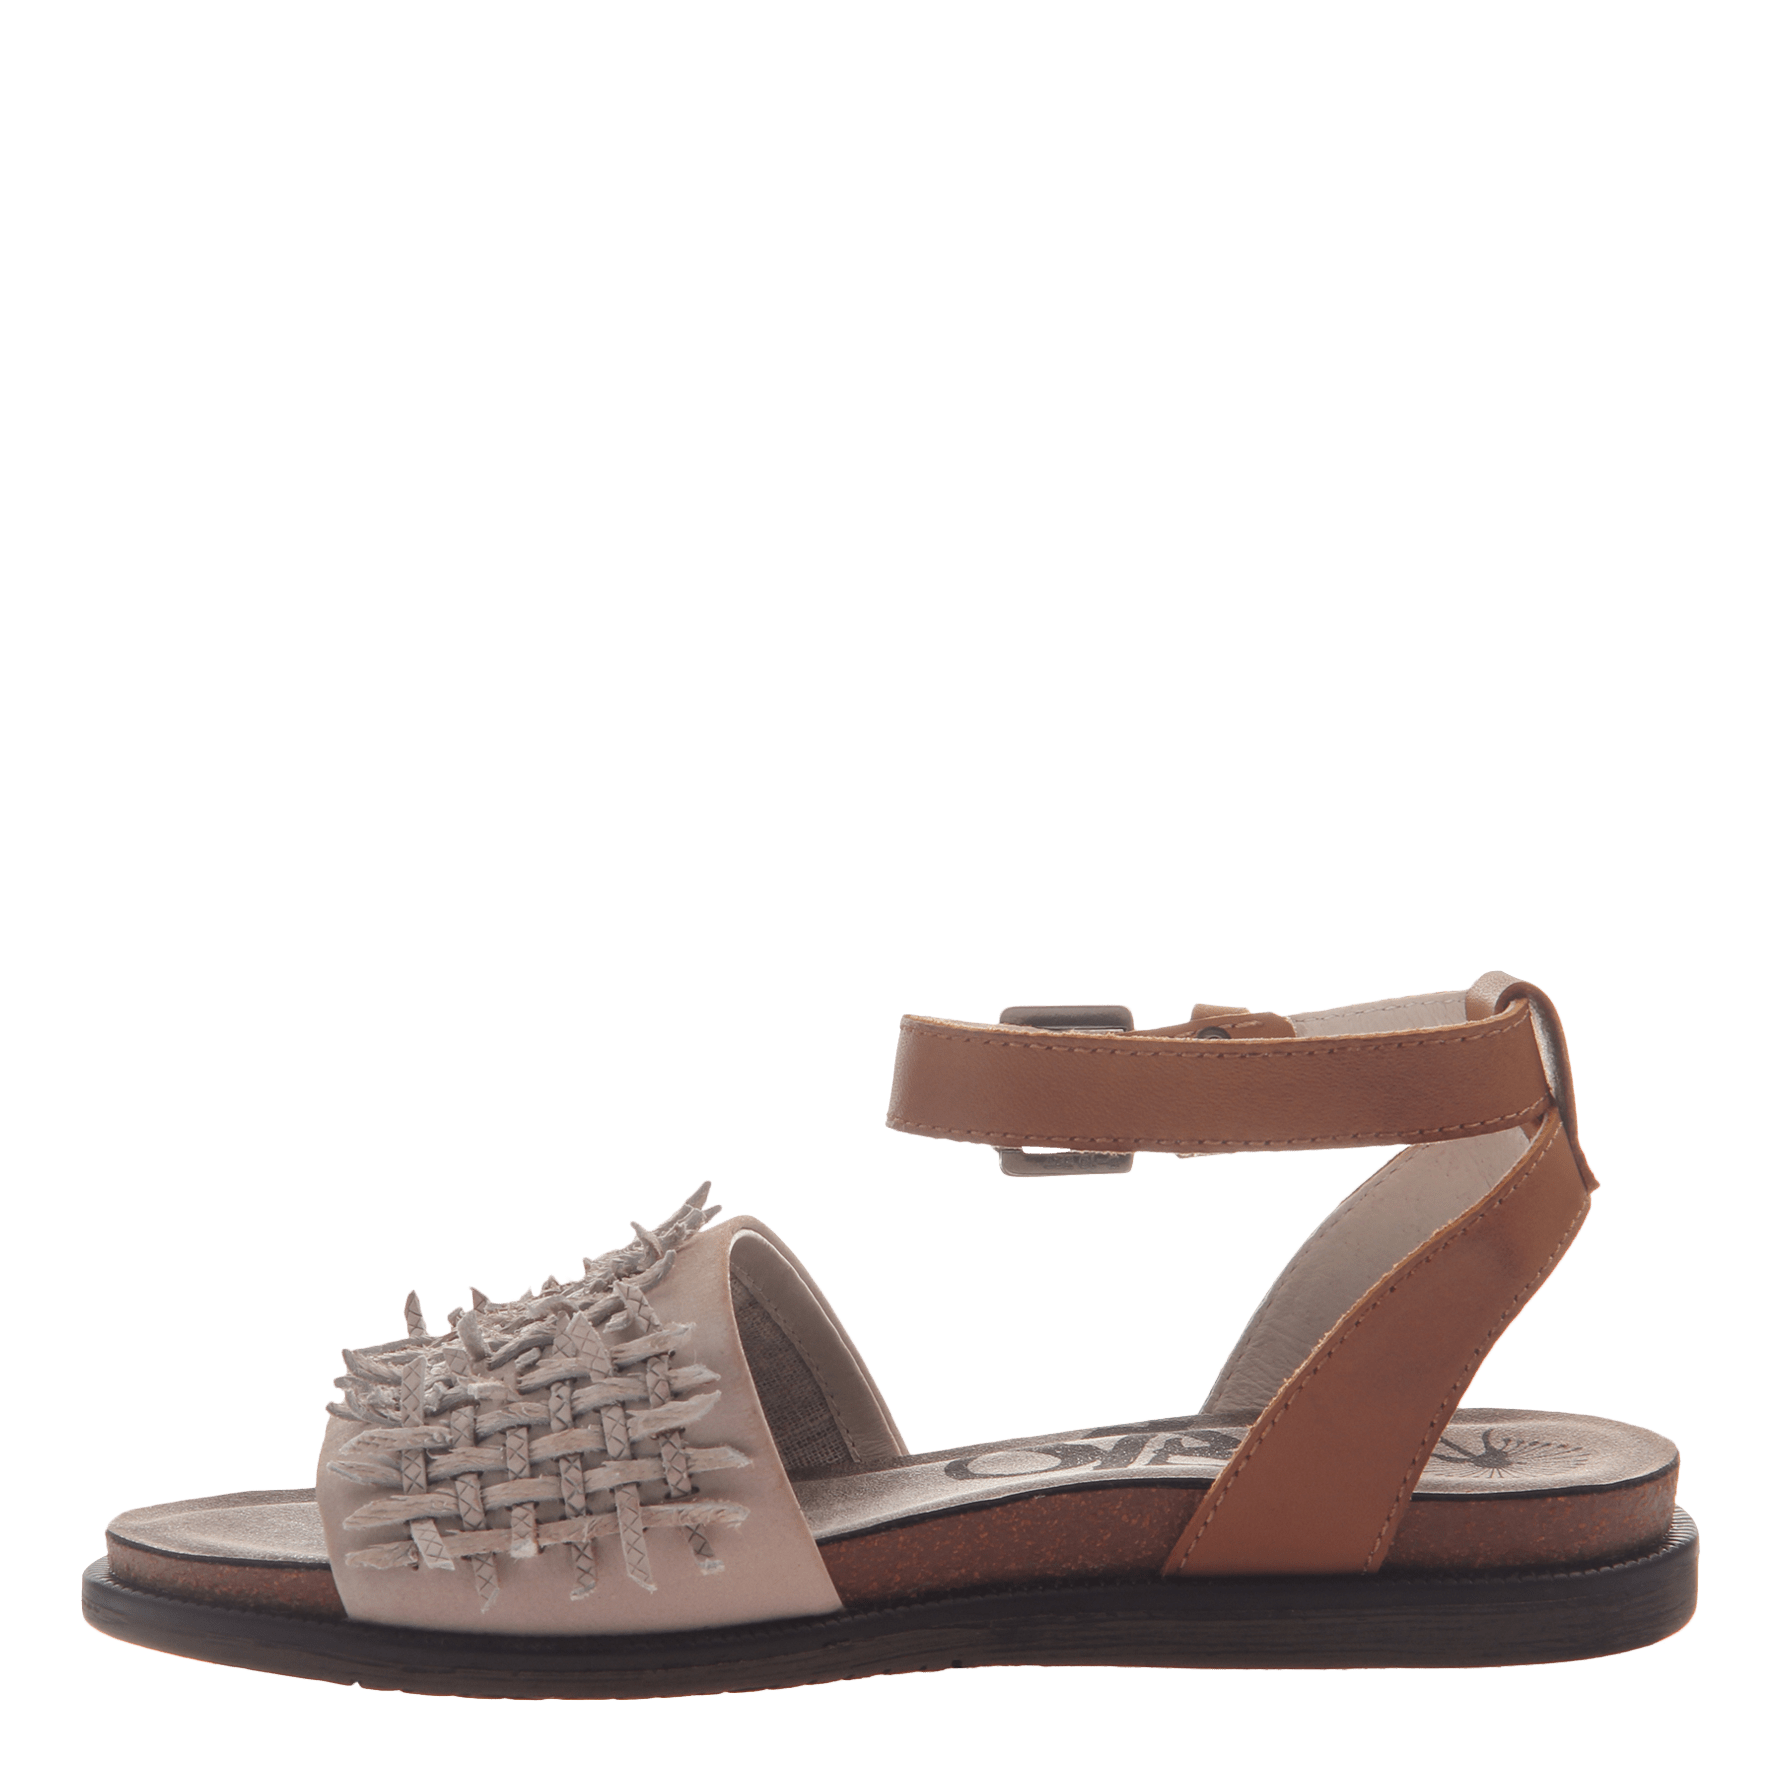 092e82378172 Womens flat sandal voyage in Dove Grey inside view